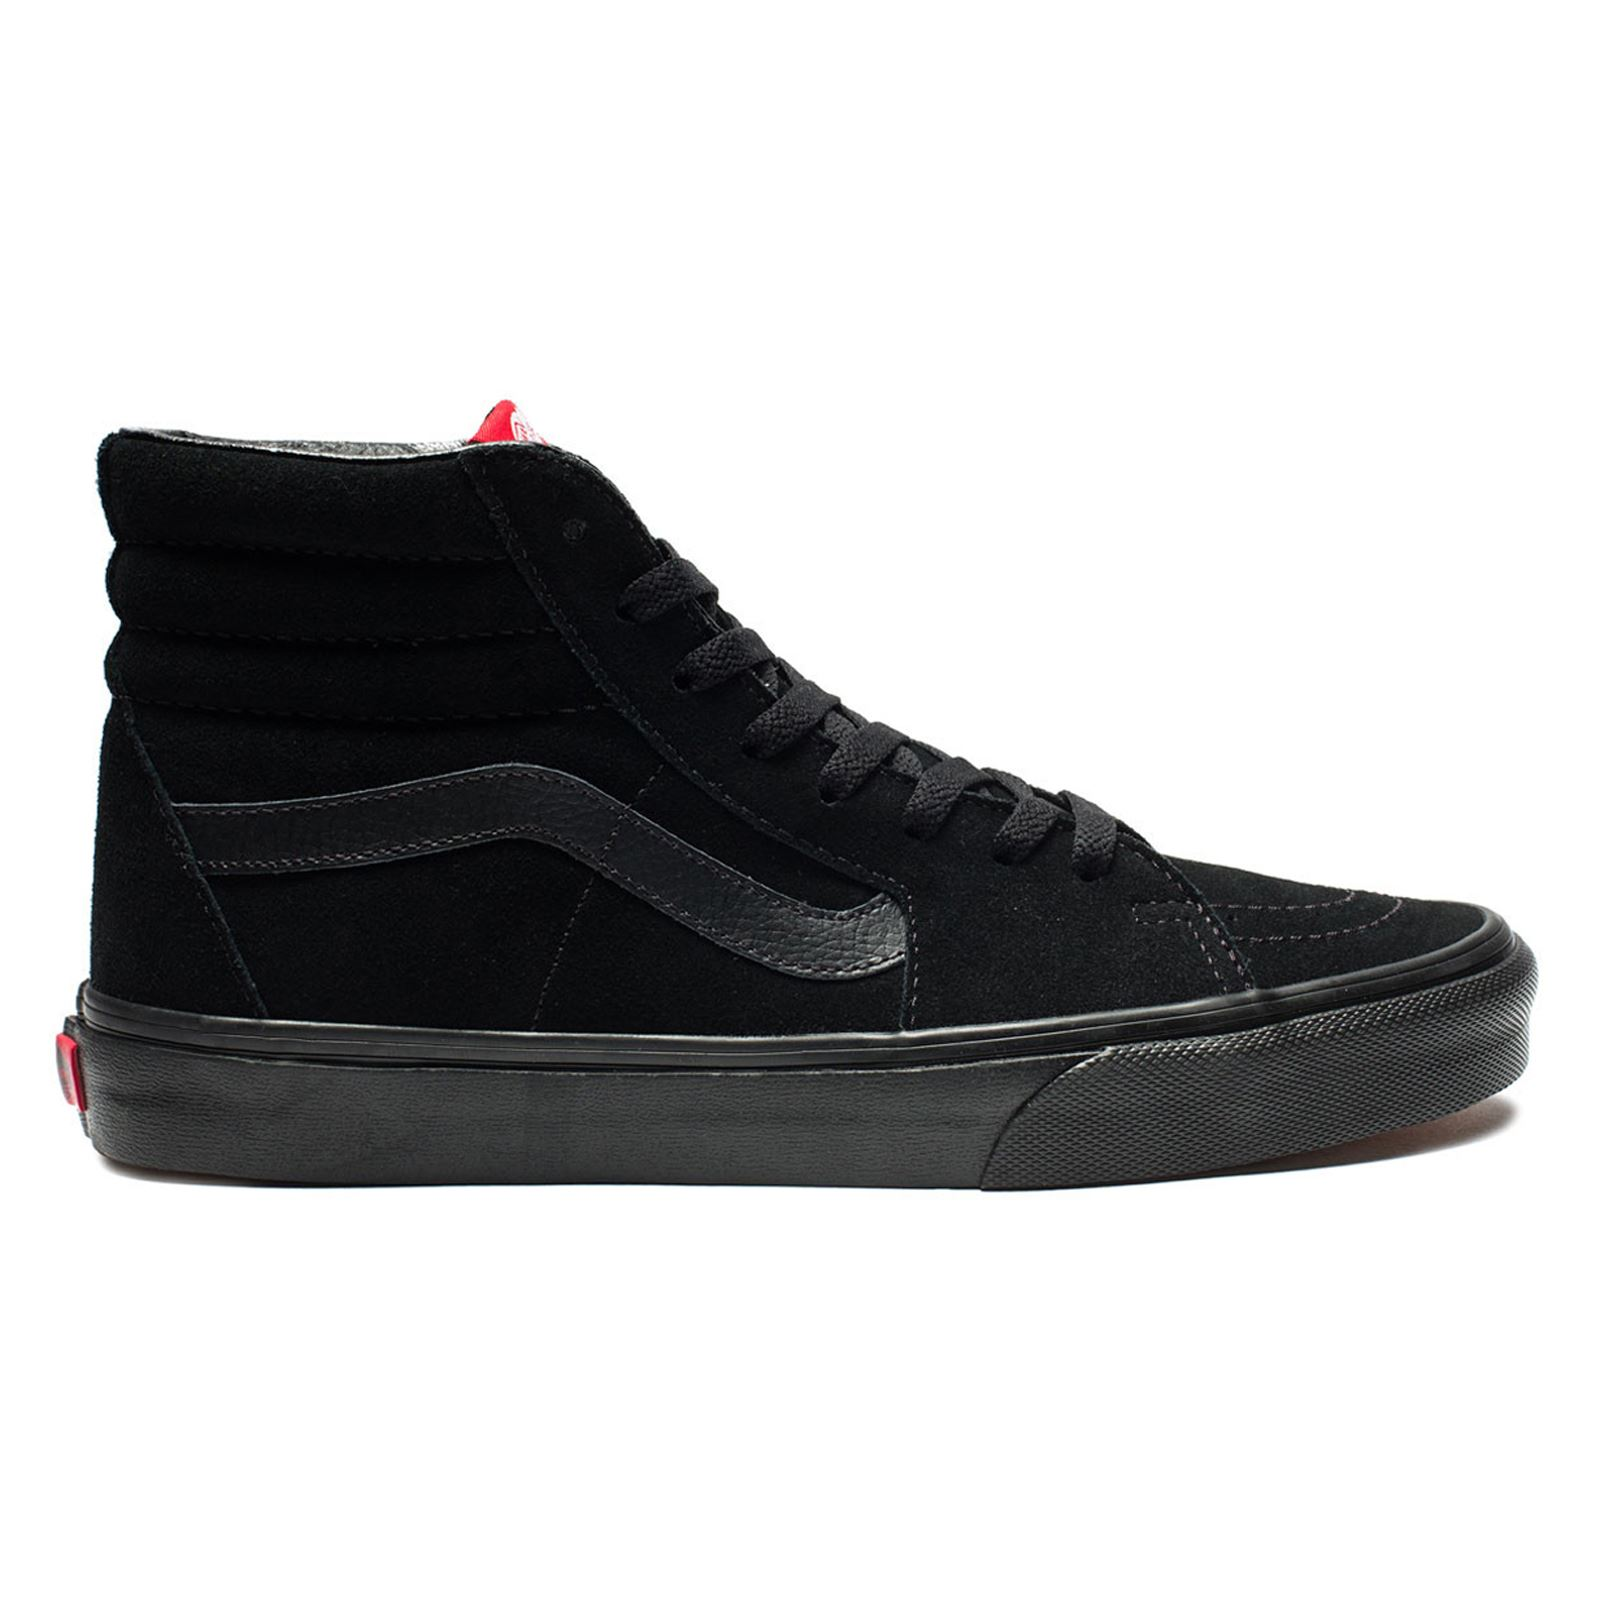 7656b1ca8f Image is loading Vans-Womens-SK8-Hi-Suede-Trainers